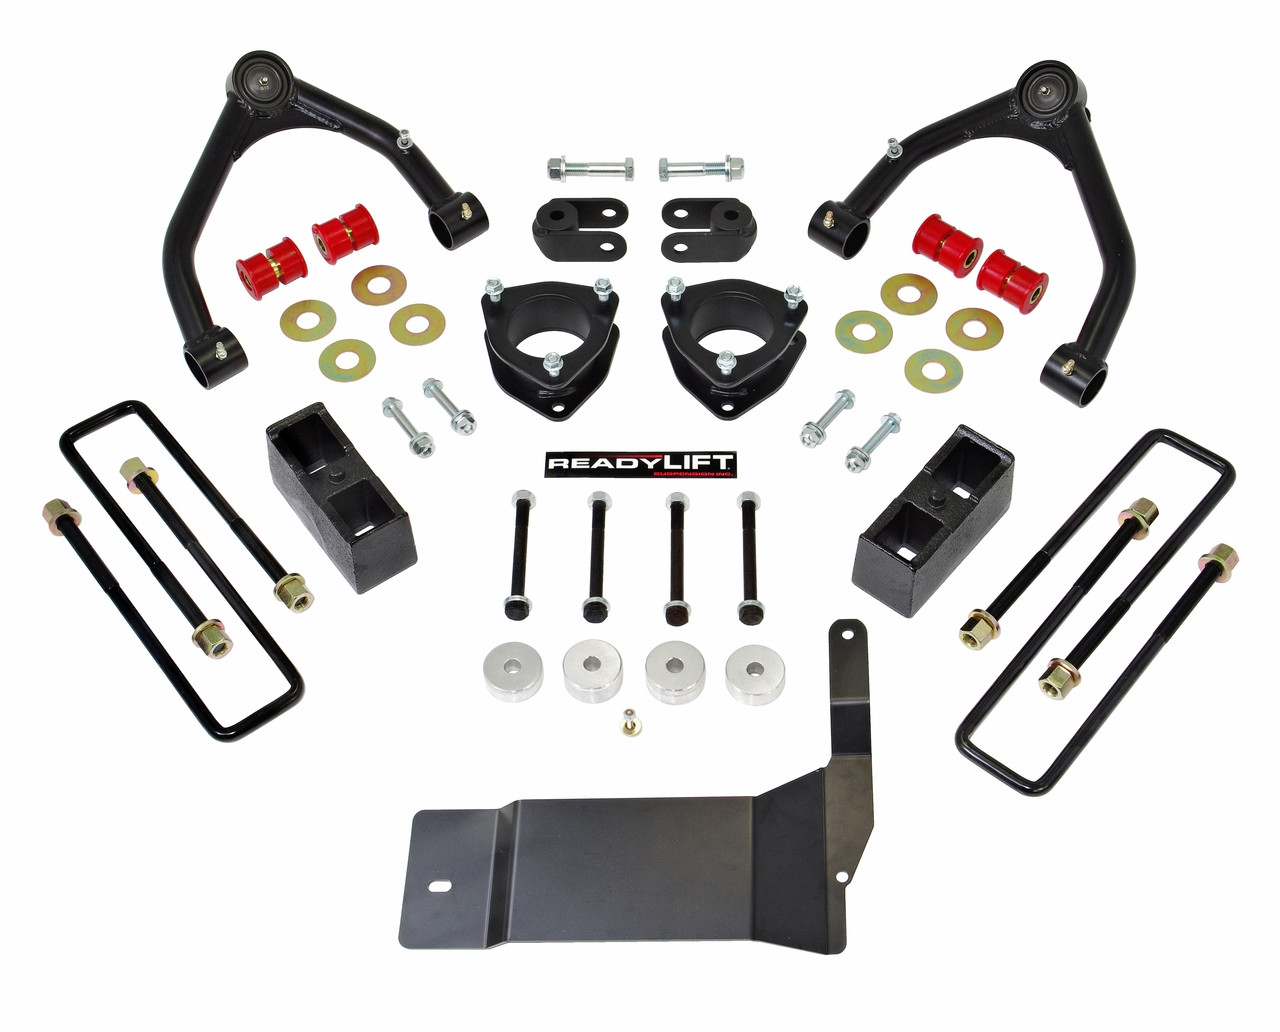 """Readylift 4.0"""" STRUT EXTENSION-3.0"""" REAR BLOCK-TUBE ARM-FOR USE W FACTORY ALUMINUM SUSPENSION 2014-2017 CHEVROLET/GMC 1500"""